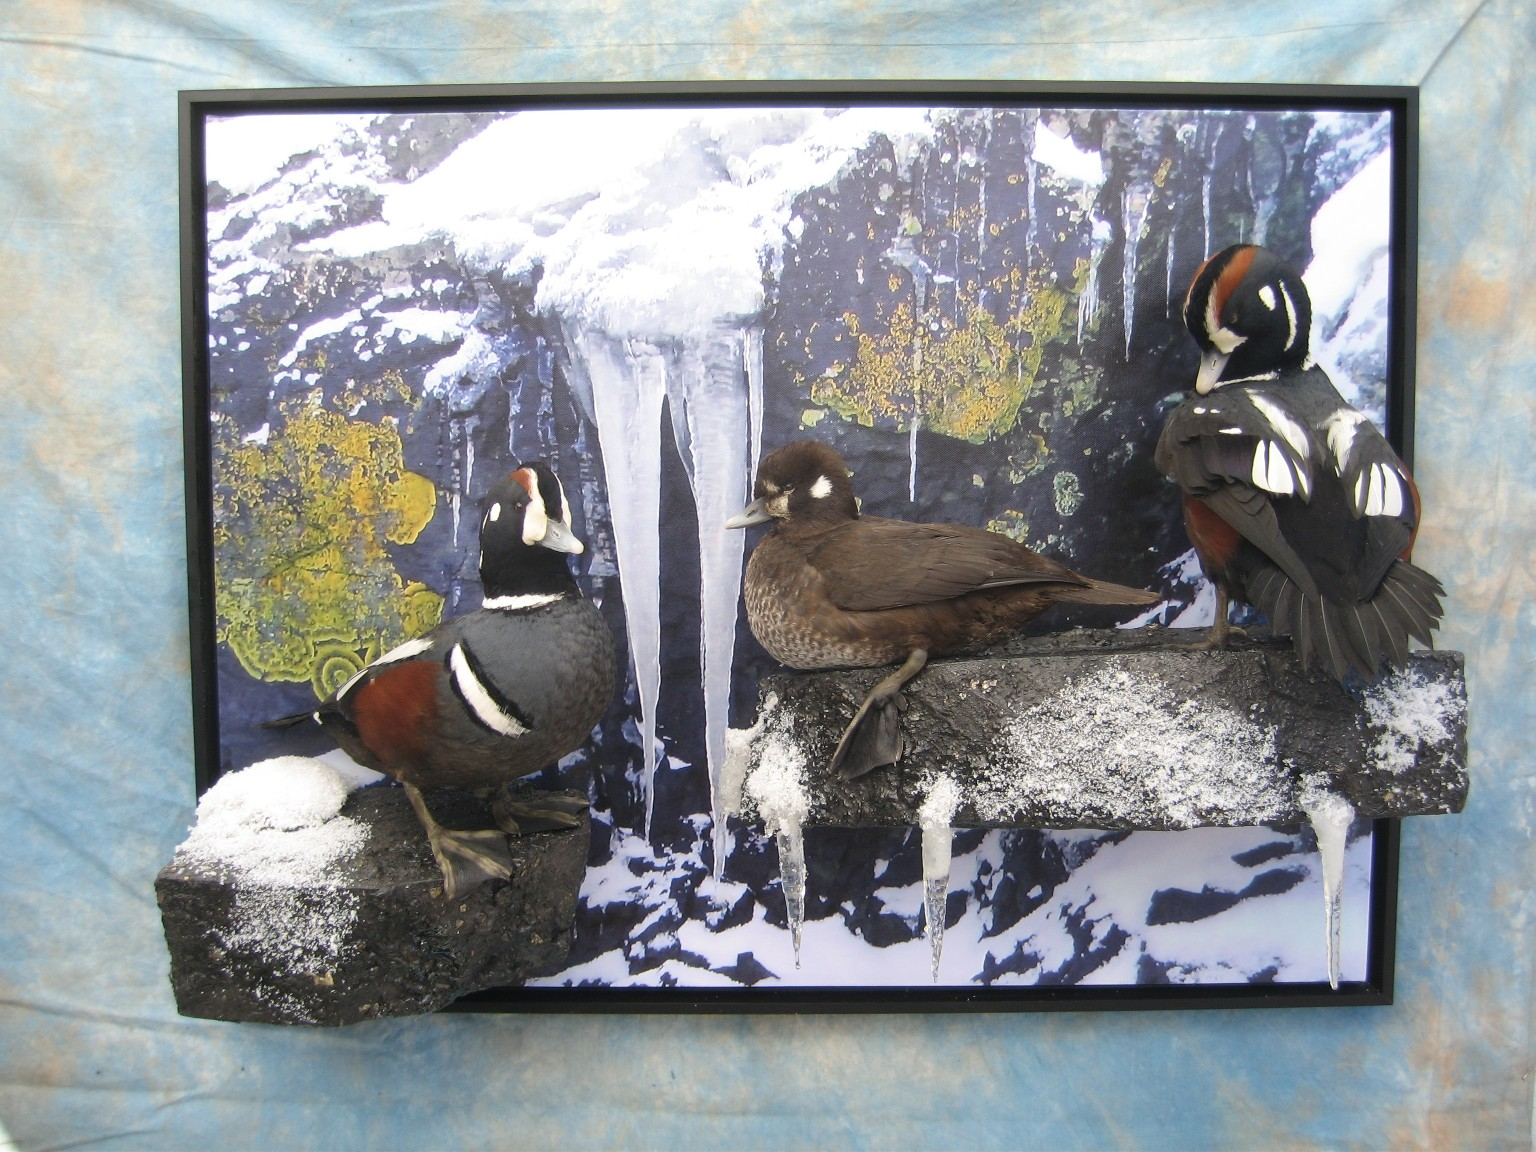 Hunter - Taxidermist for taxidermy and mounting